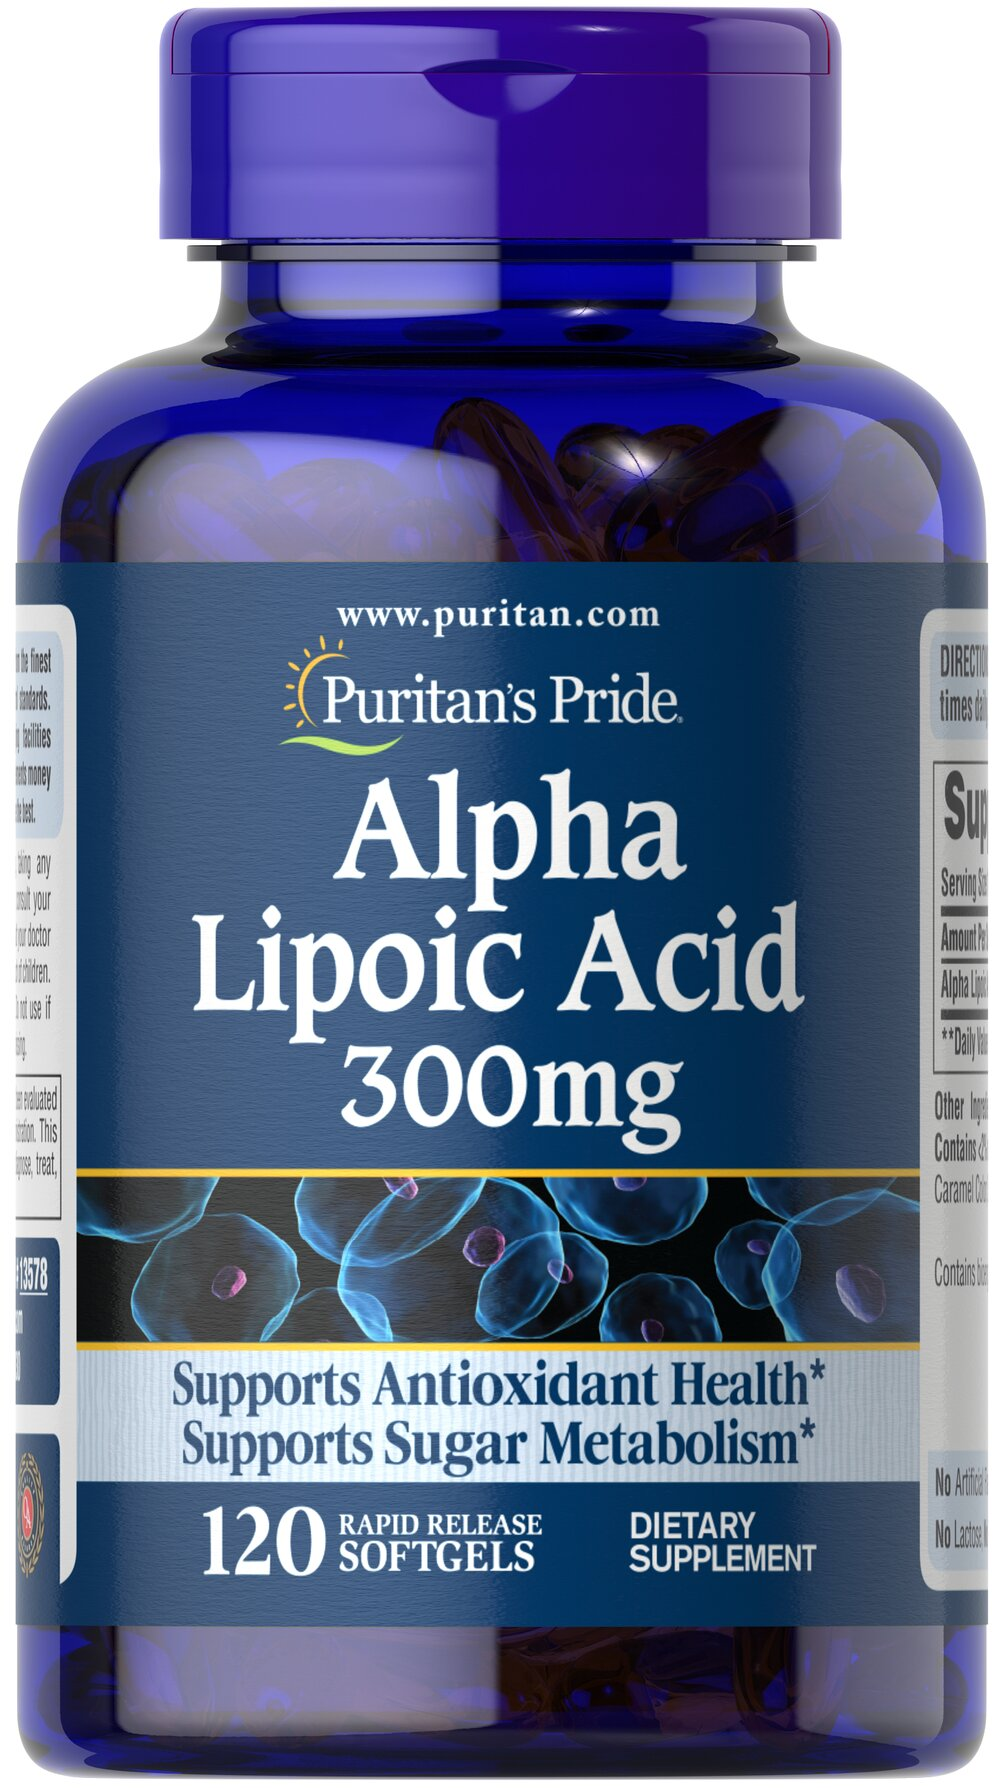 "Alpha Lipoic Acid 300 mg <p>Alpha Lipoic Acid (ALA) helps metabolize sugar, especially in muscles, where it promotes energy.**</p><p>ALA is also beneficial for liver health, and helps to revitalize the underlying structure of the skin so it can look healthier and more radiant.**</p><p> ALA is often called the ""universal antioxidant"" for its ability to help neutralize cell-damaging free radicals.** </p> 120 Softgels 300 mg $21.58"